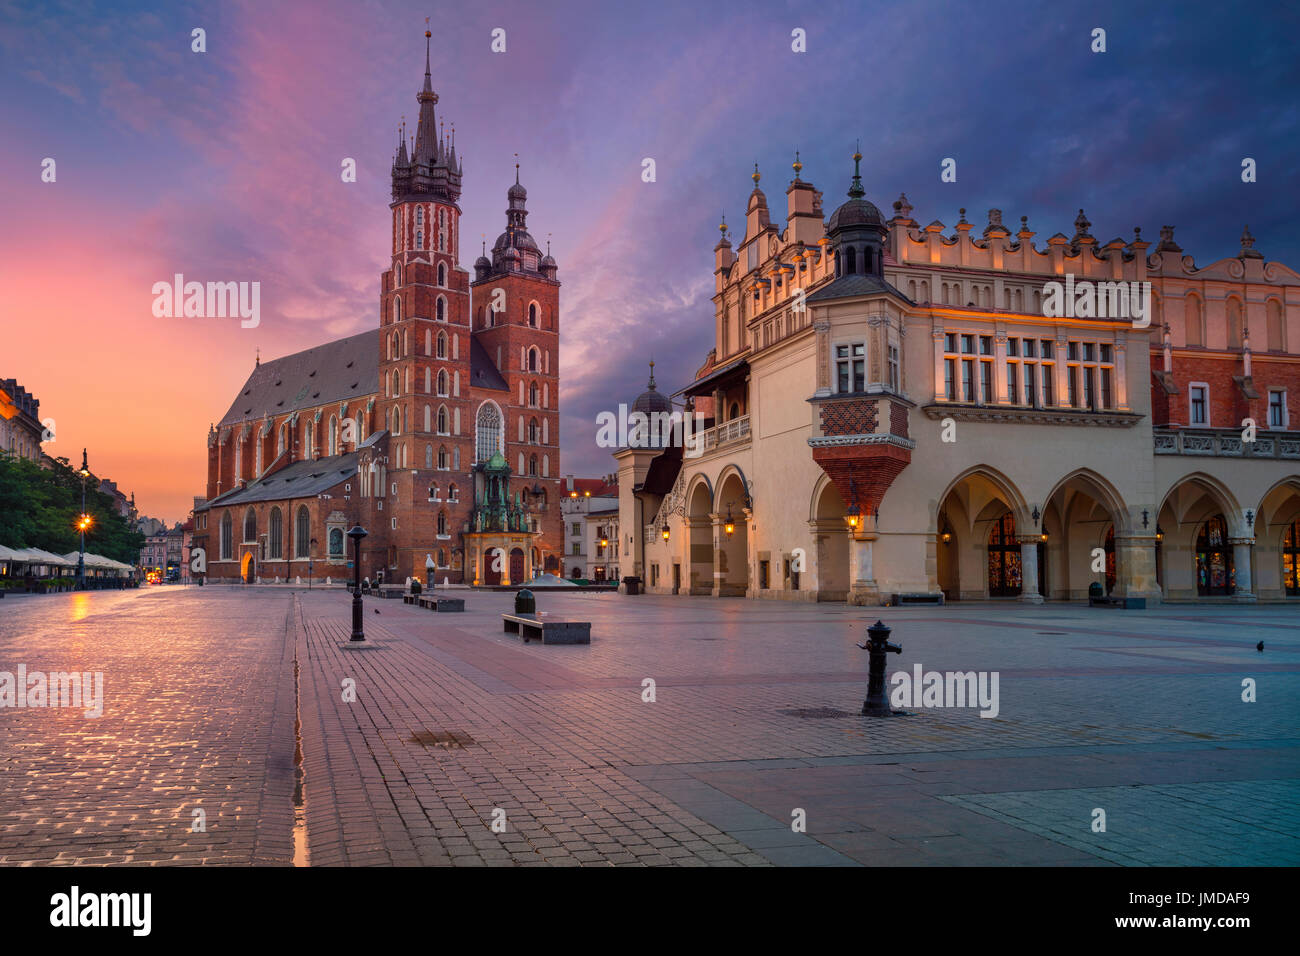 Cracovie. Droit de la vieille ville de Cracovie, en Pologne, pendant le lever du soleil. Photo Stock